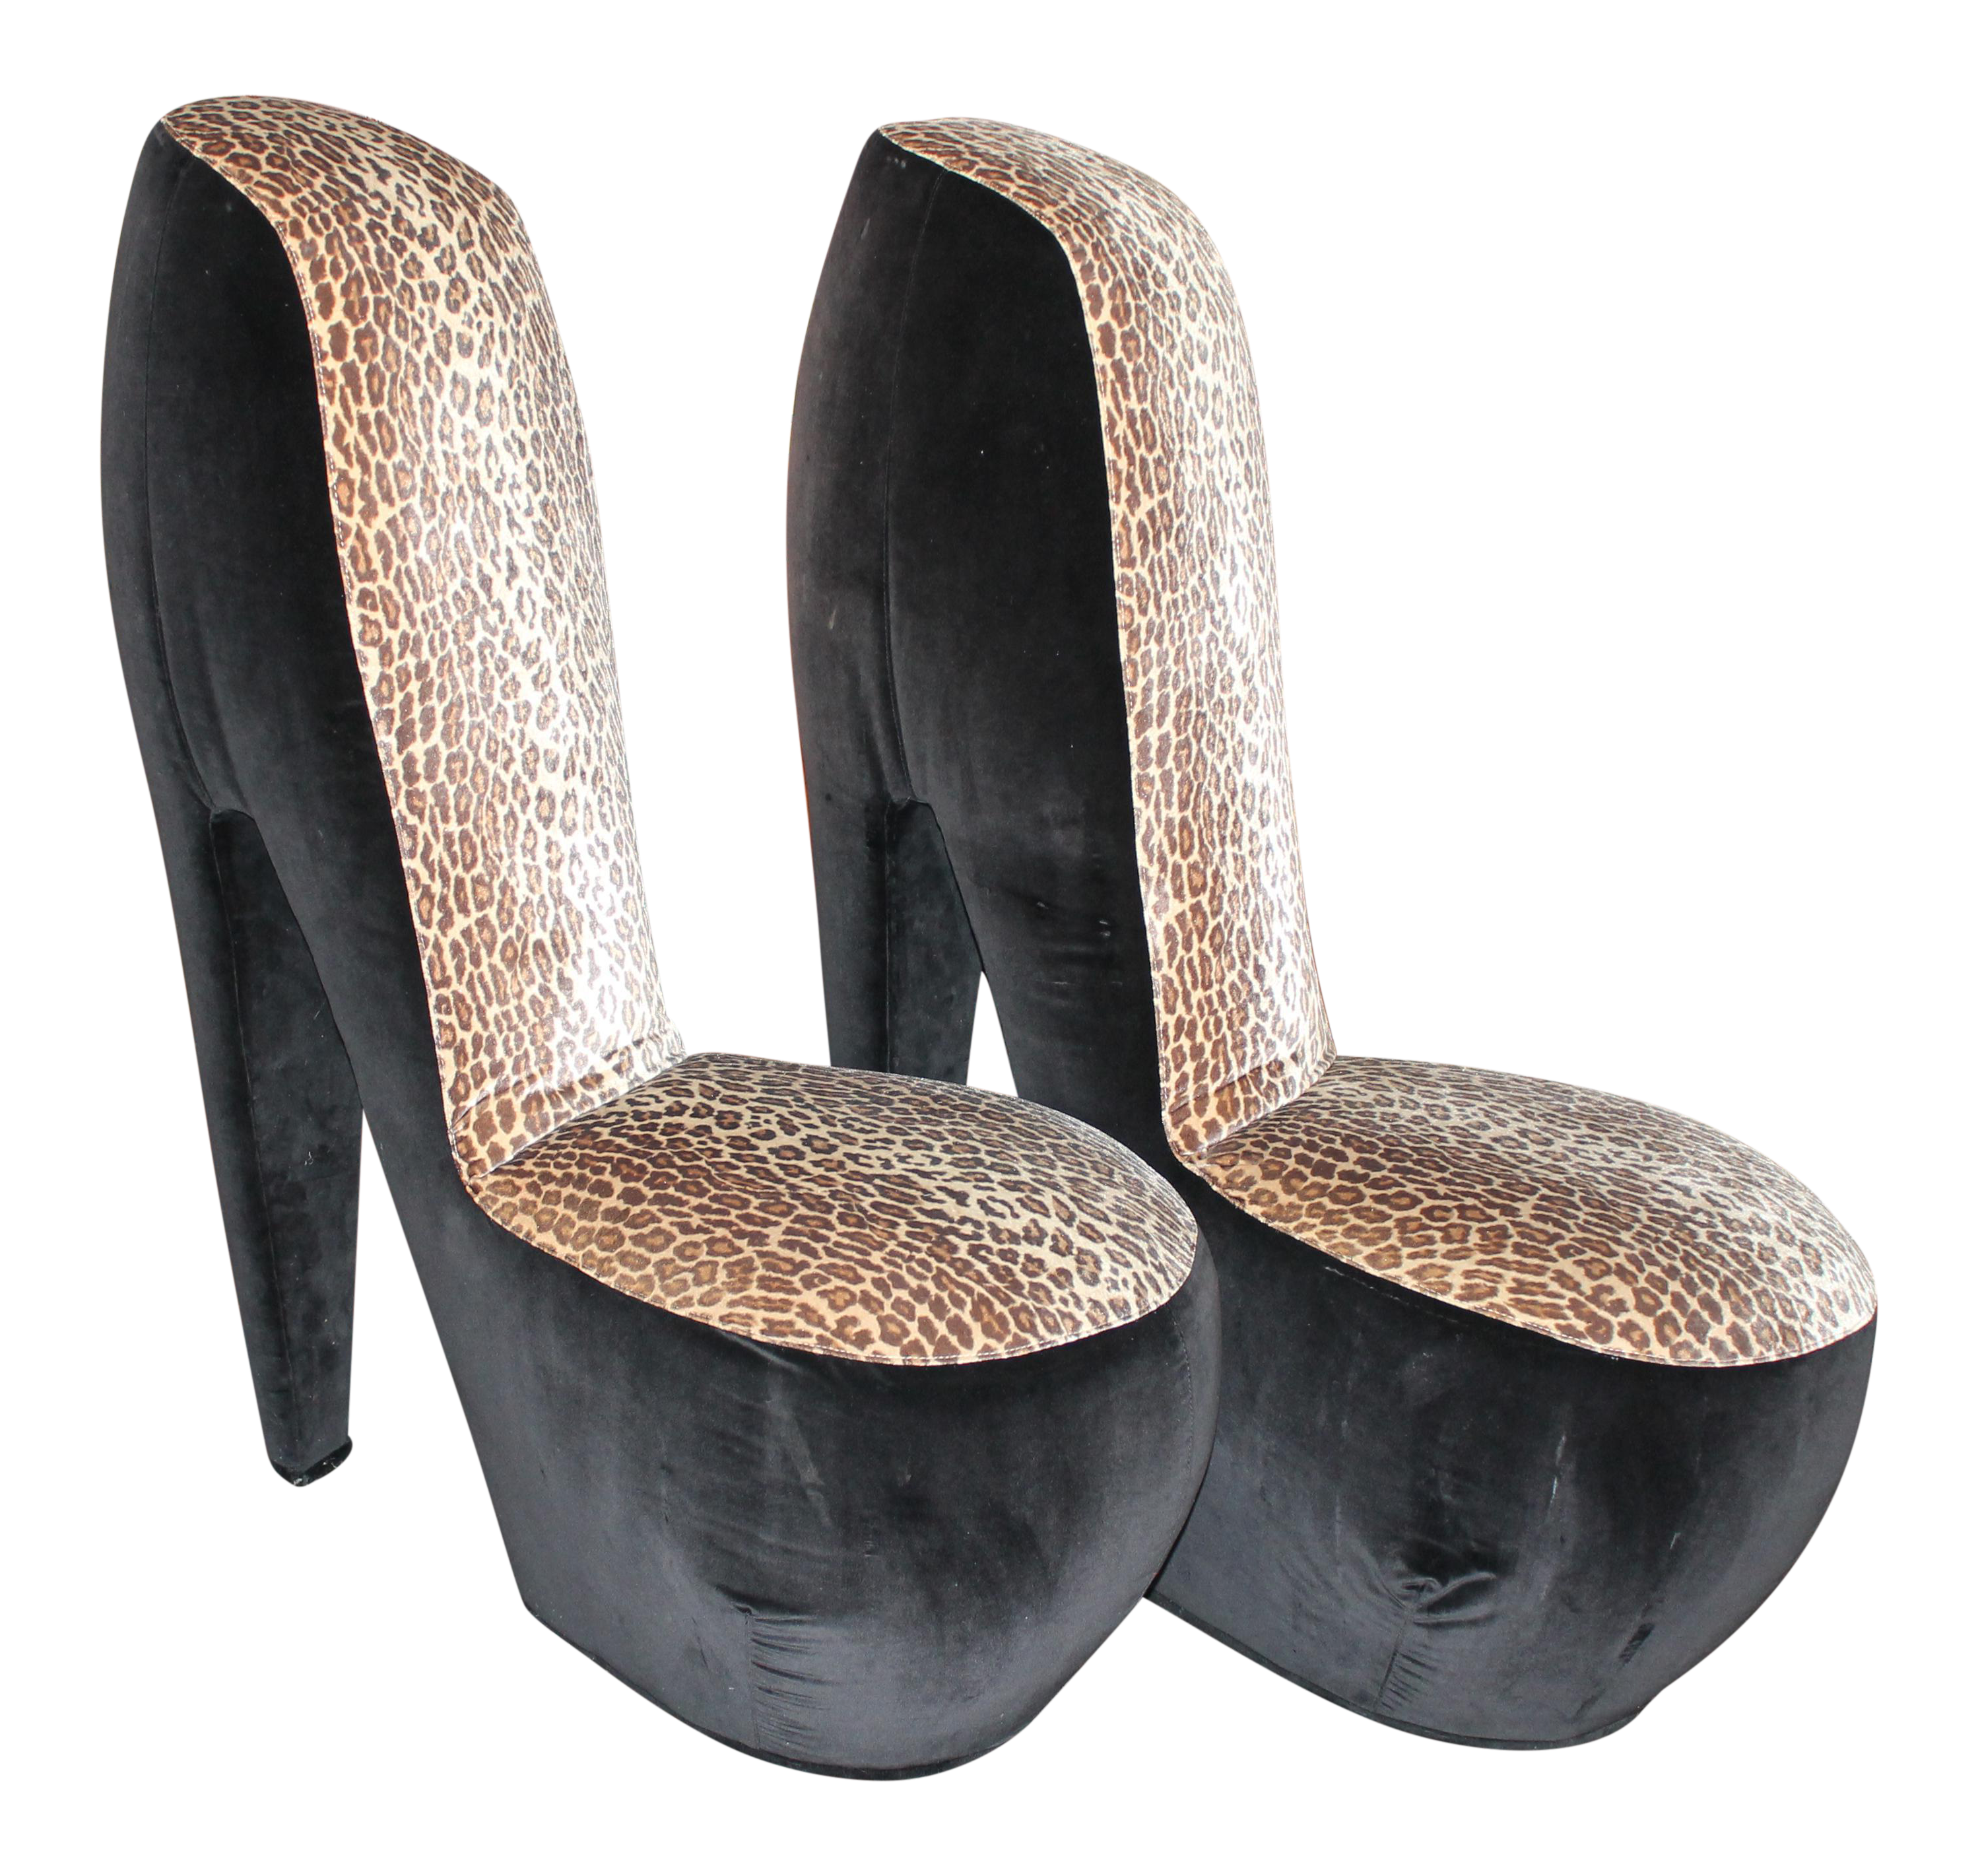 Leopard Print High Heel Shoe Chairs A Pair